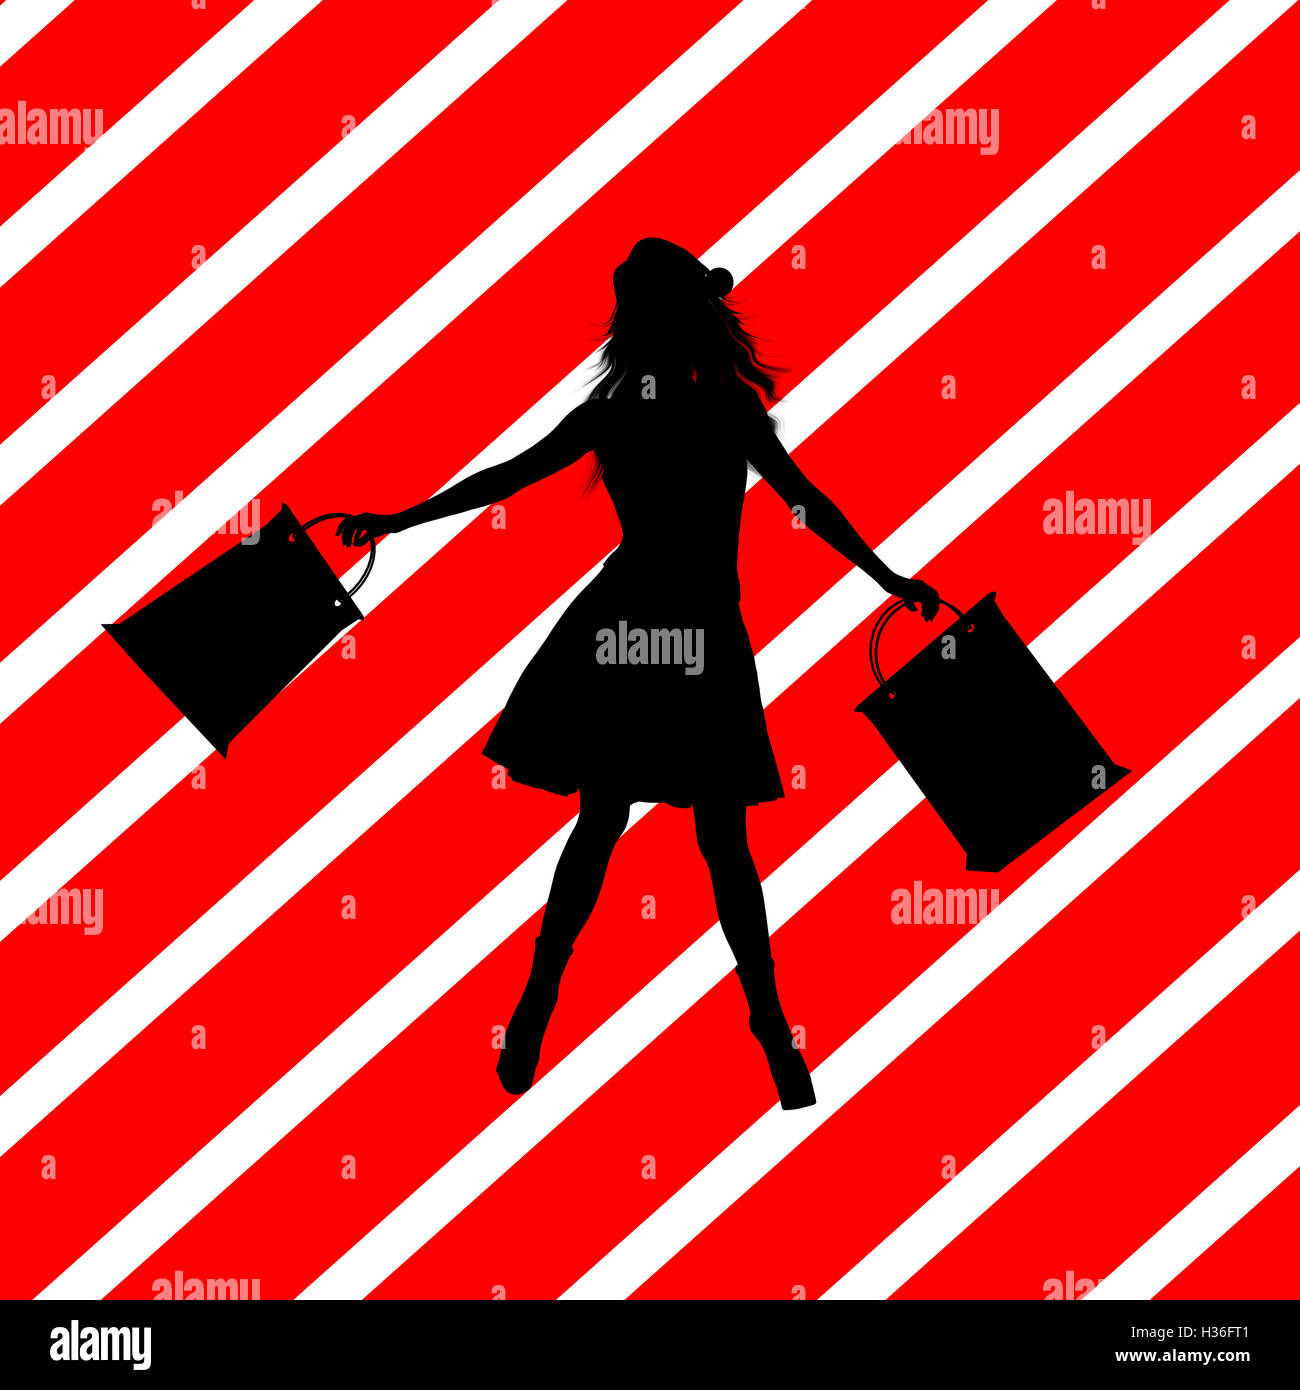 Christmas Shopping Silhouette Illustration - Stock Image